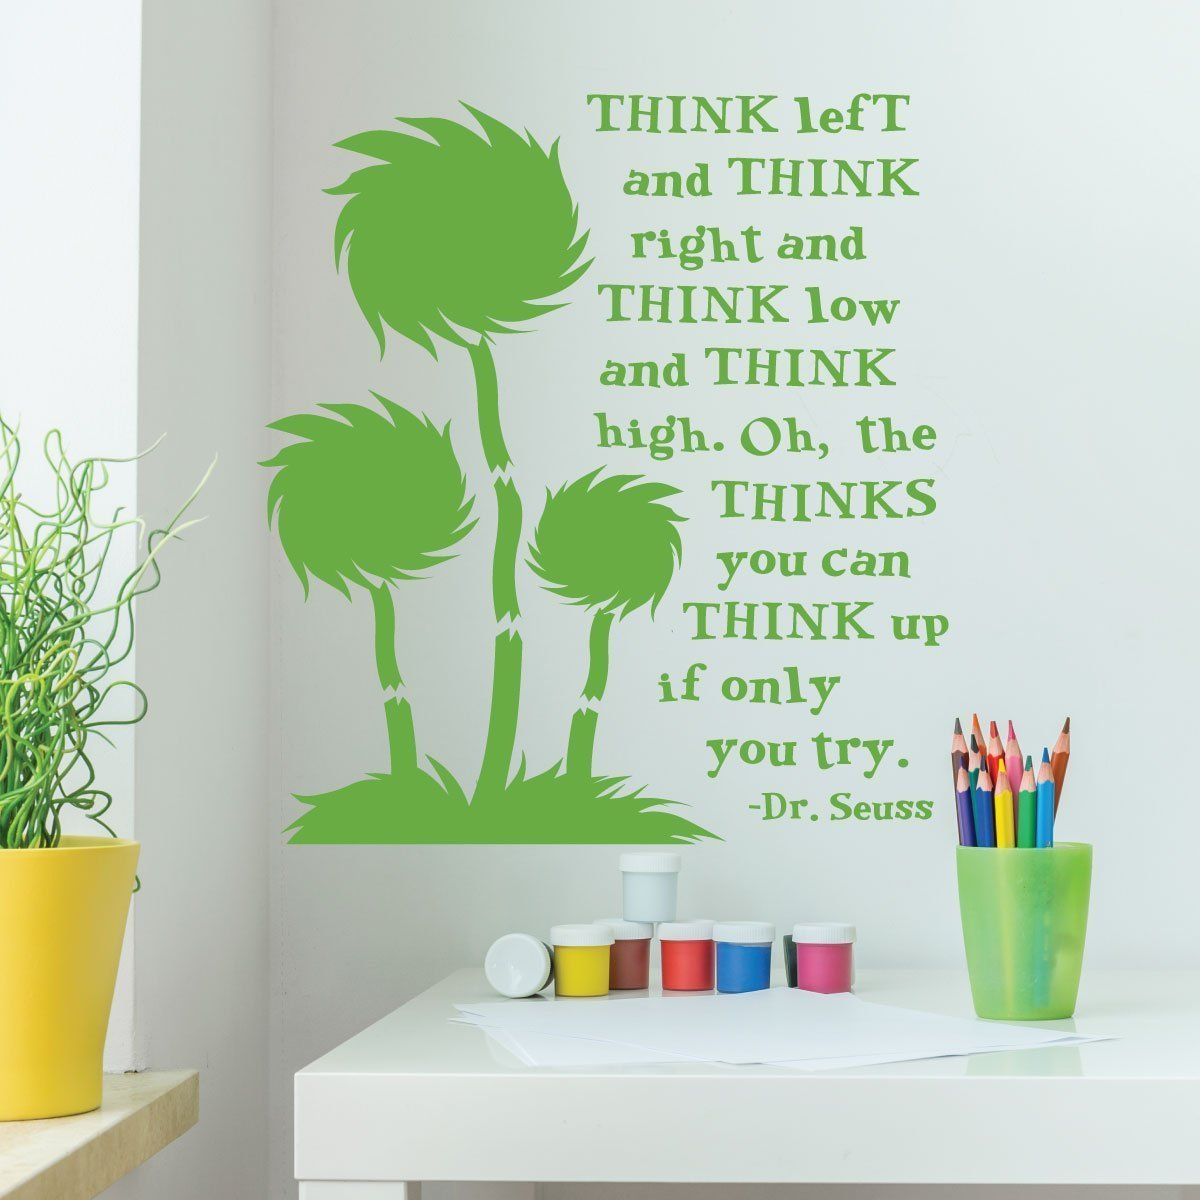 Dr. Seuss Wall Decor for Classrooms-Think Left And Think Right And Think Low and Think High-Playroom Child Bedroom Nursery Party Decoration